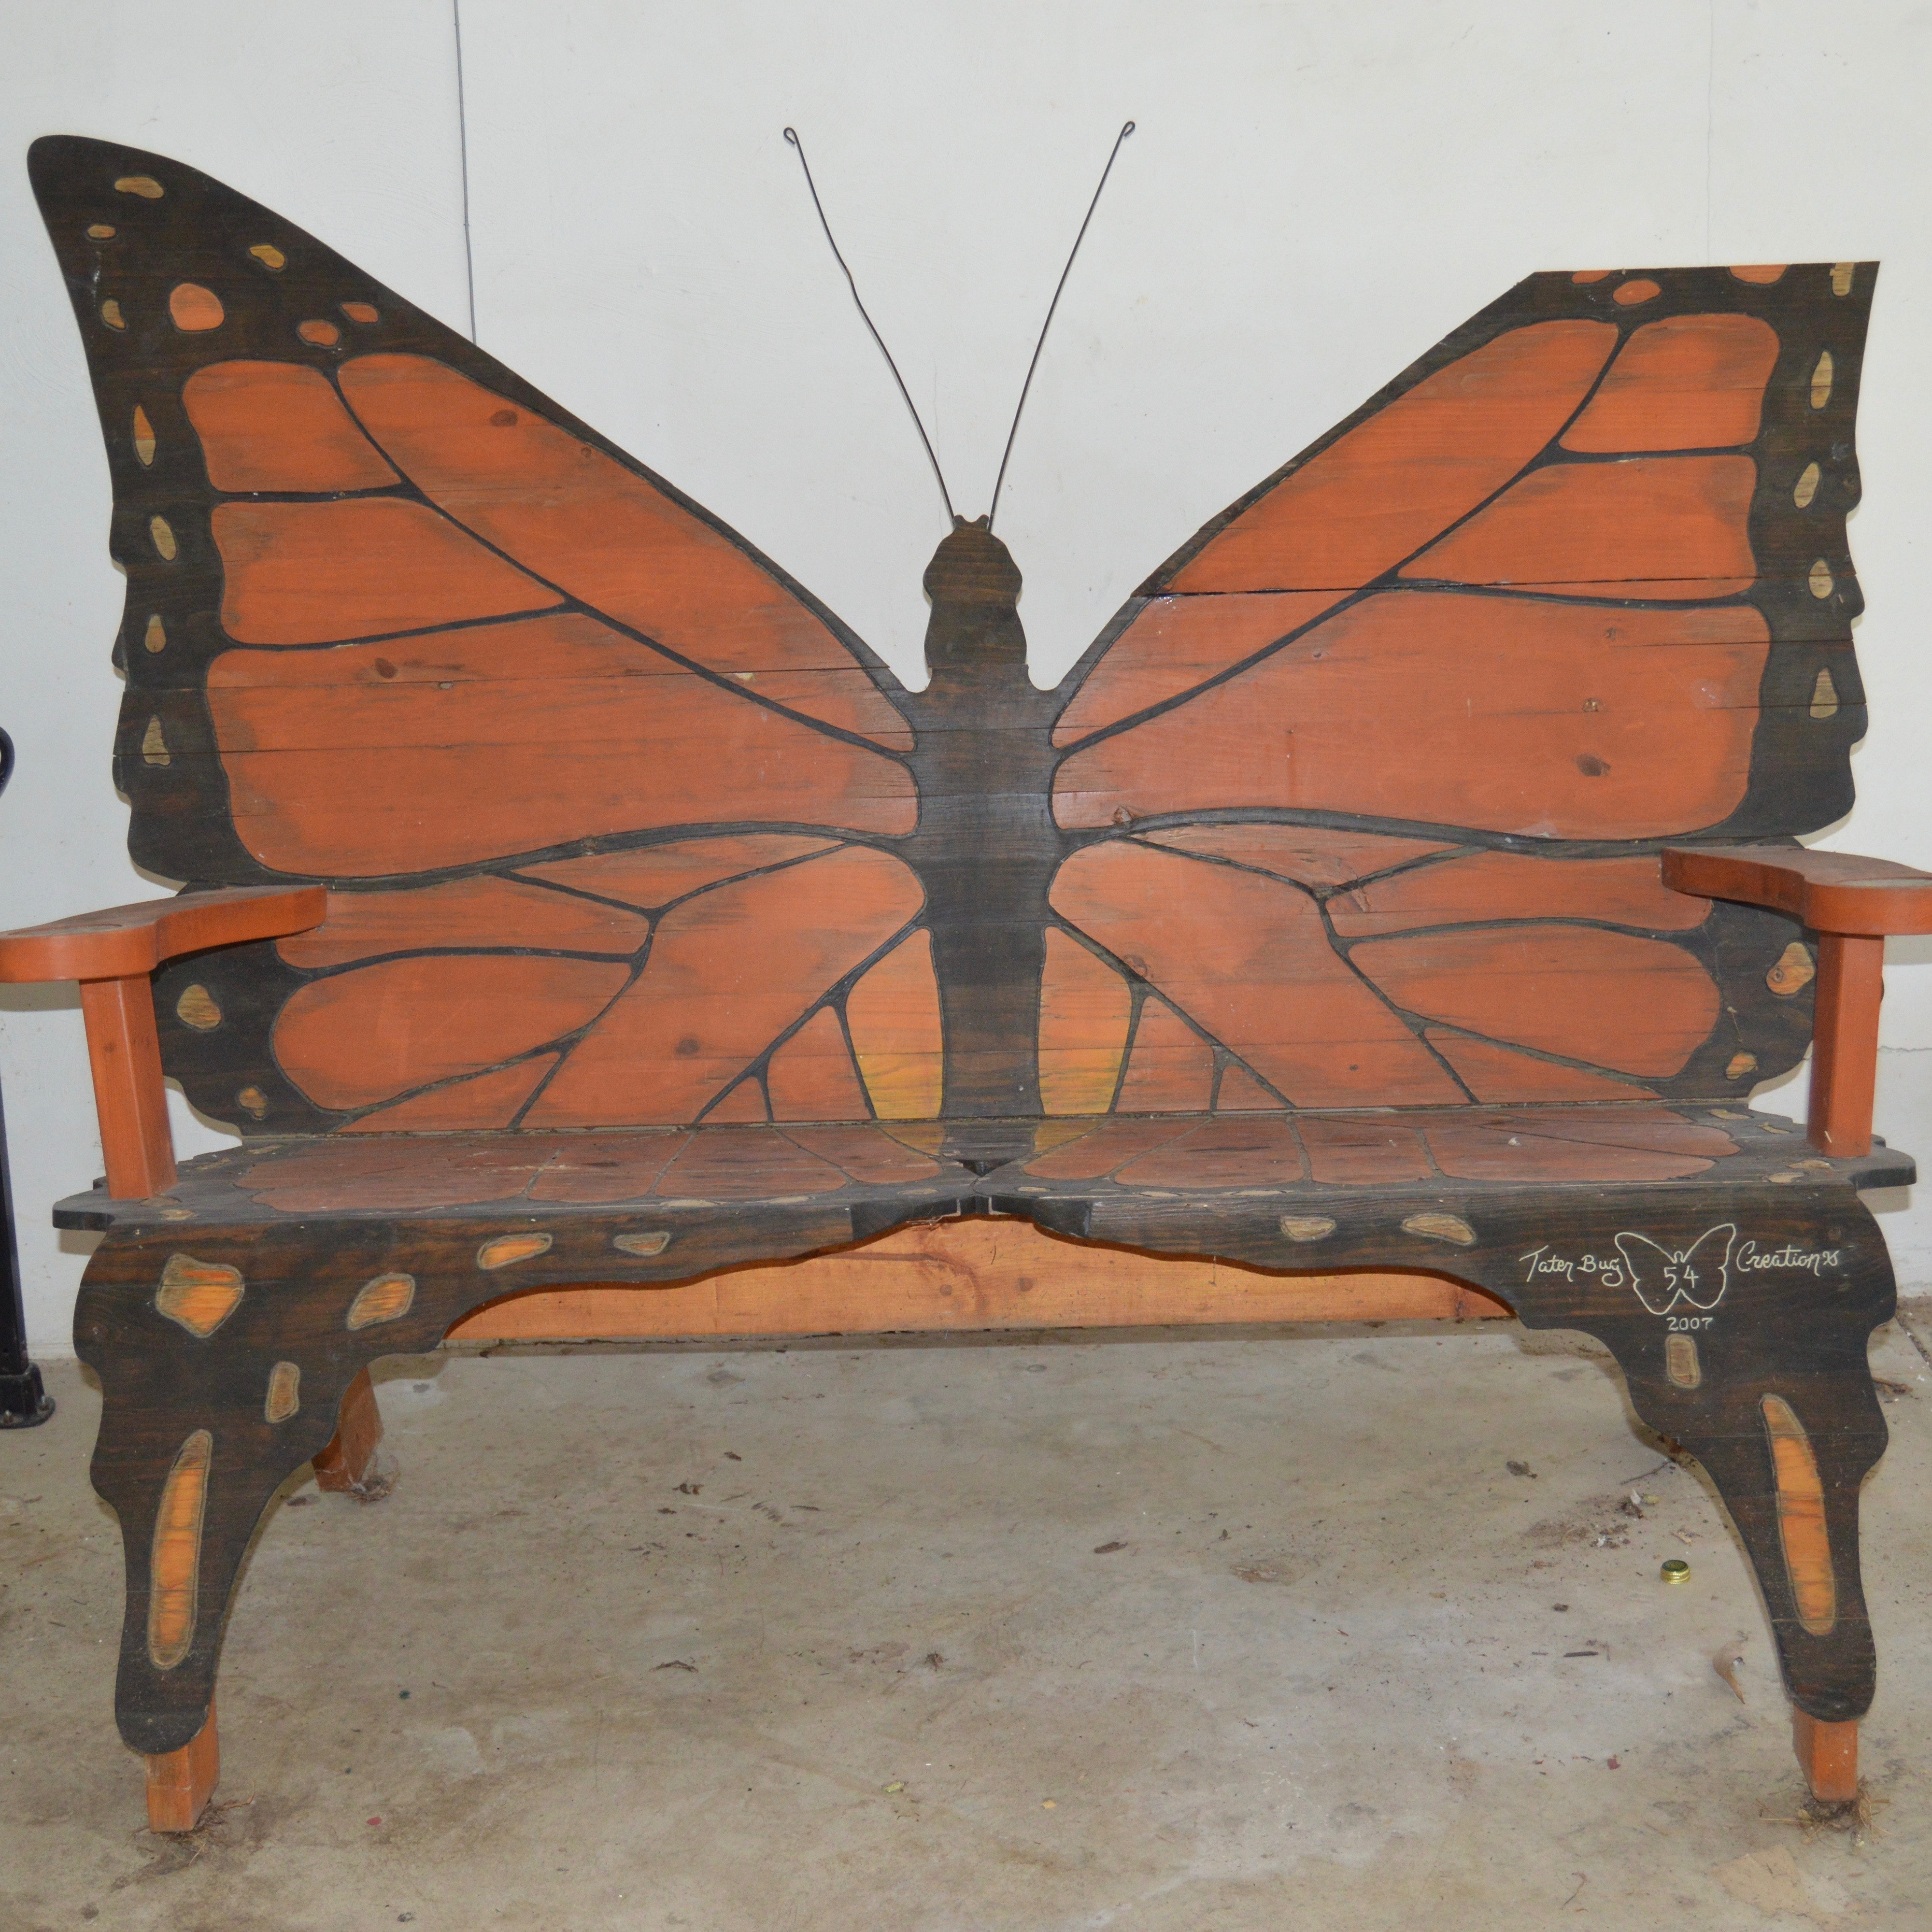 Unique Butterfly Bench